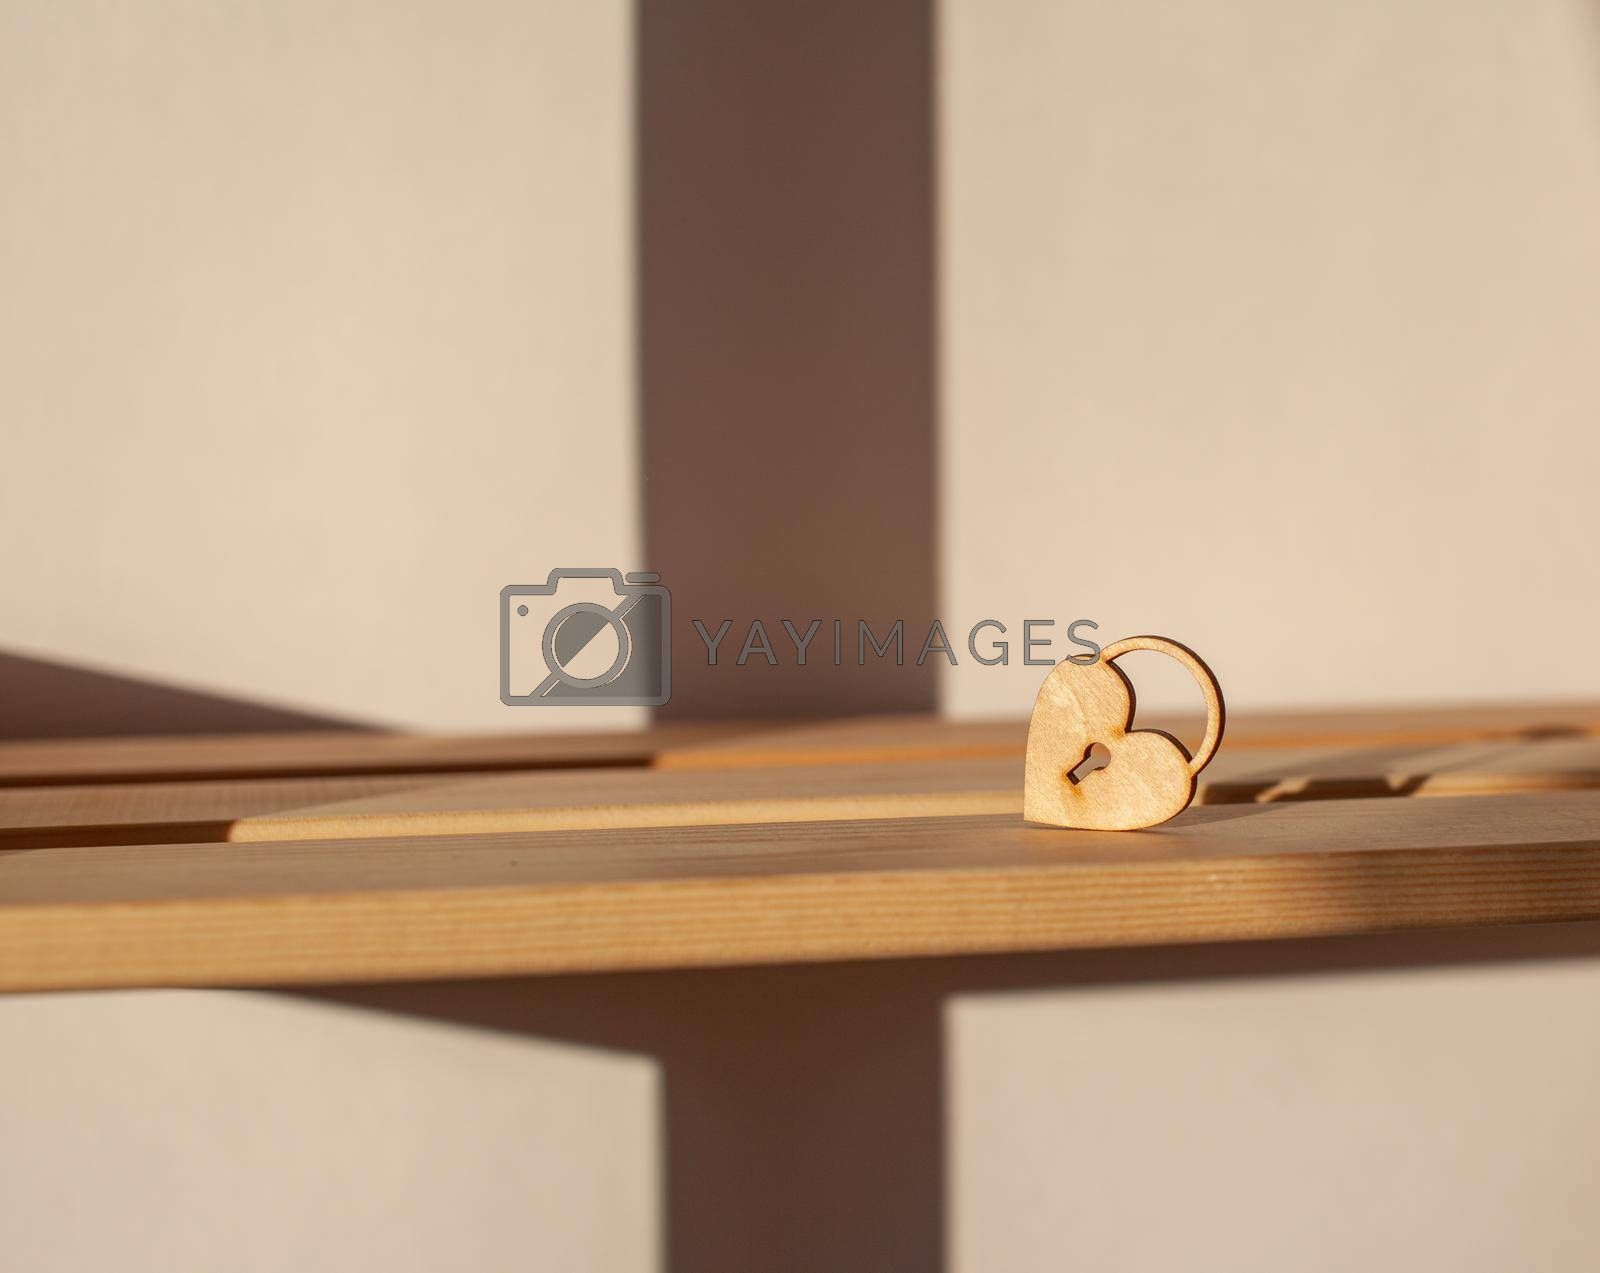 A wooden heart with a keyhole is on the shelf. The heart is illuminated by warm sunlight.